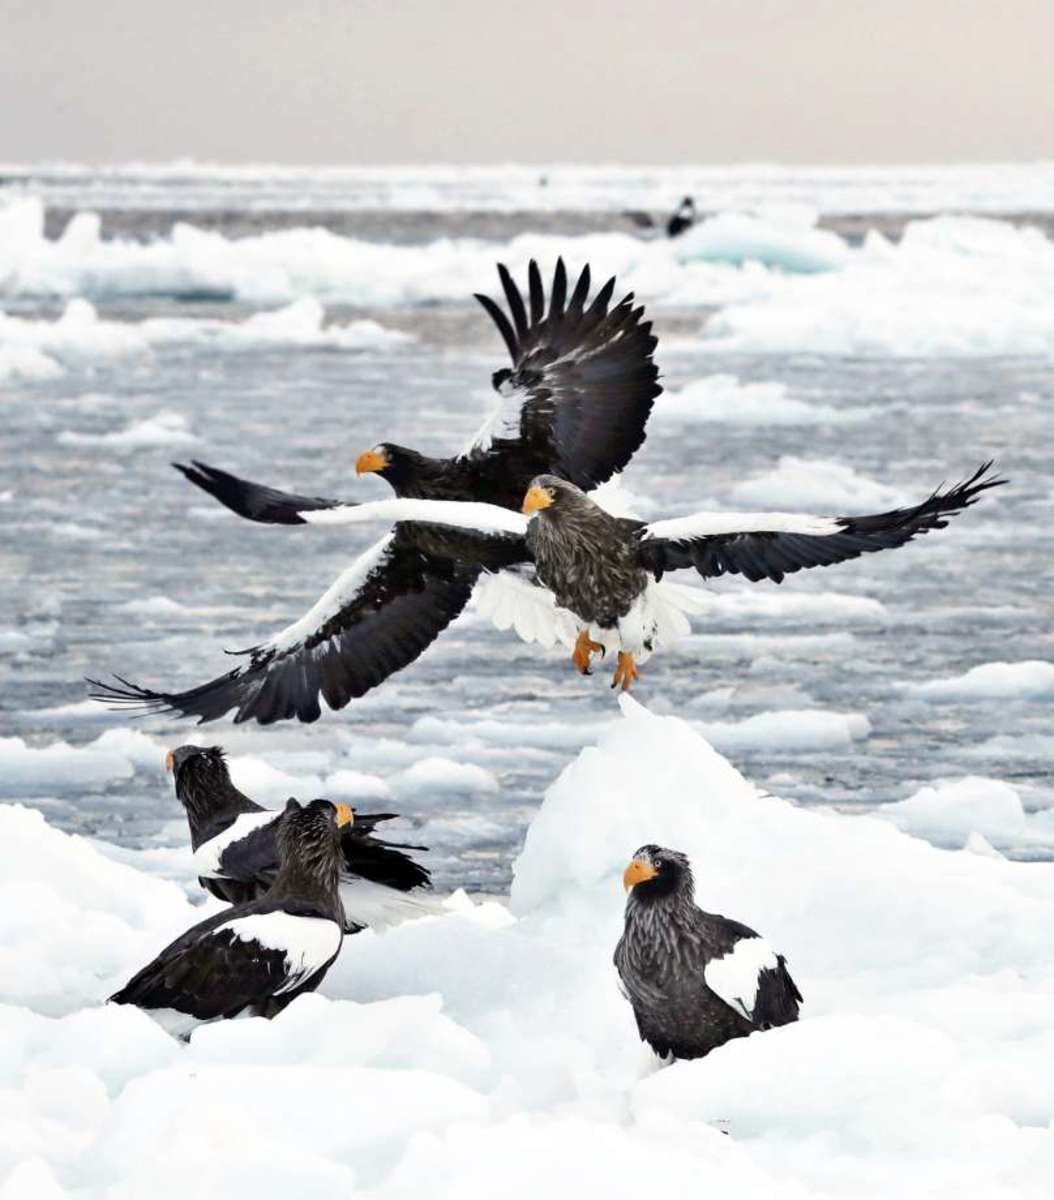 Sea Eagles on Drift Ice off the Coast of Shiretoko